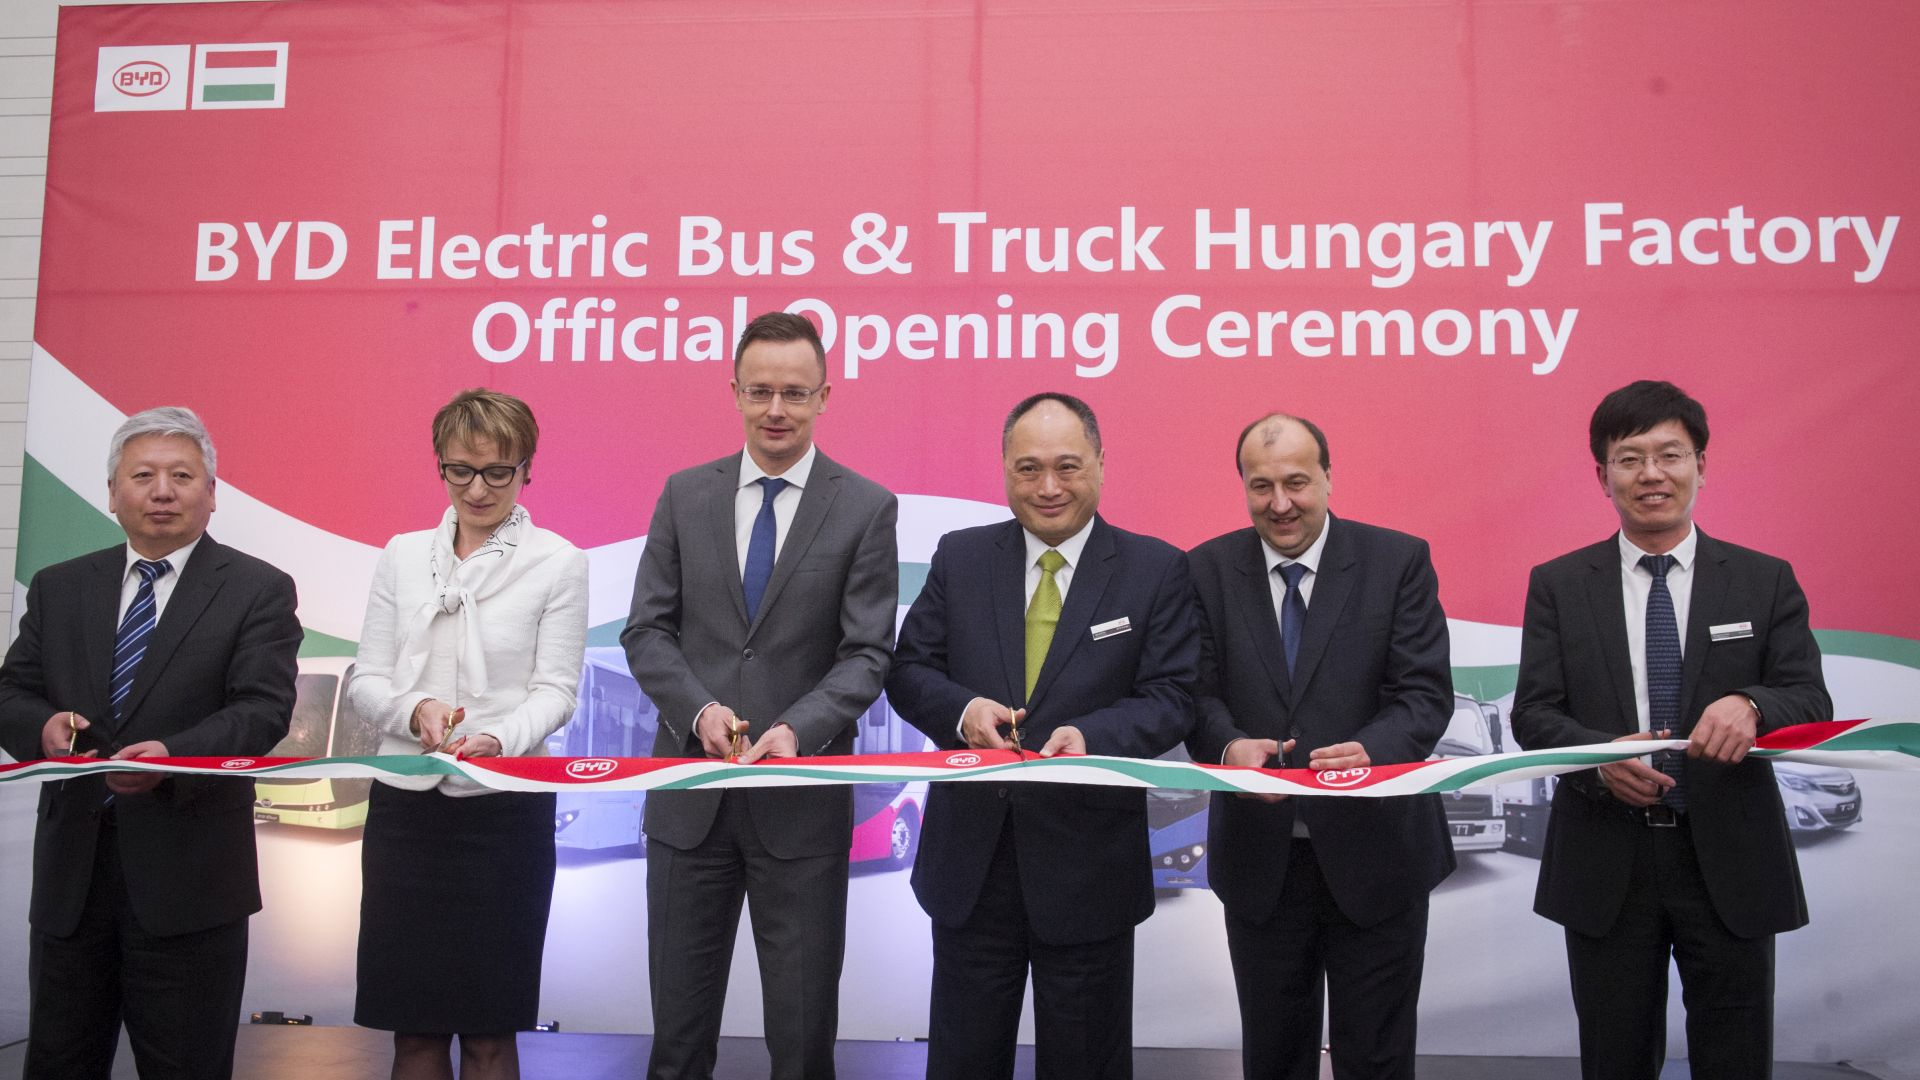 The new plant is now ready to provide BYD's European custumers